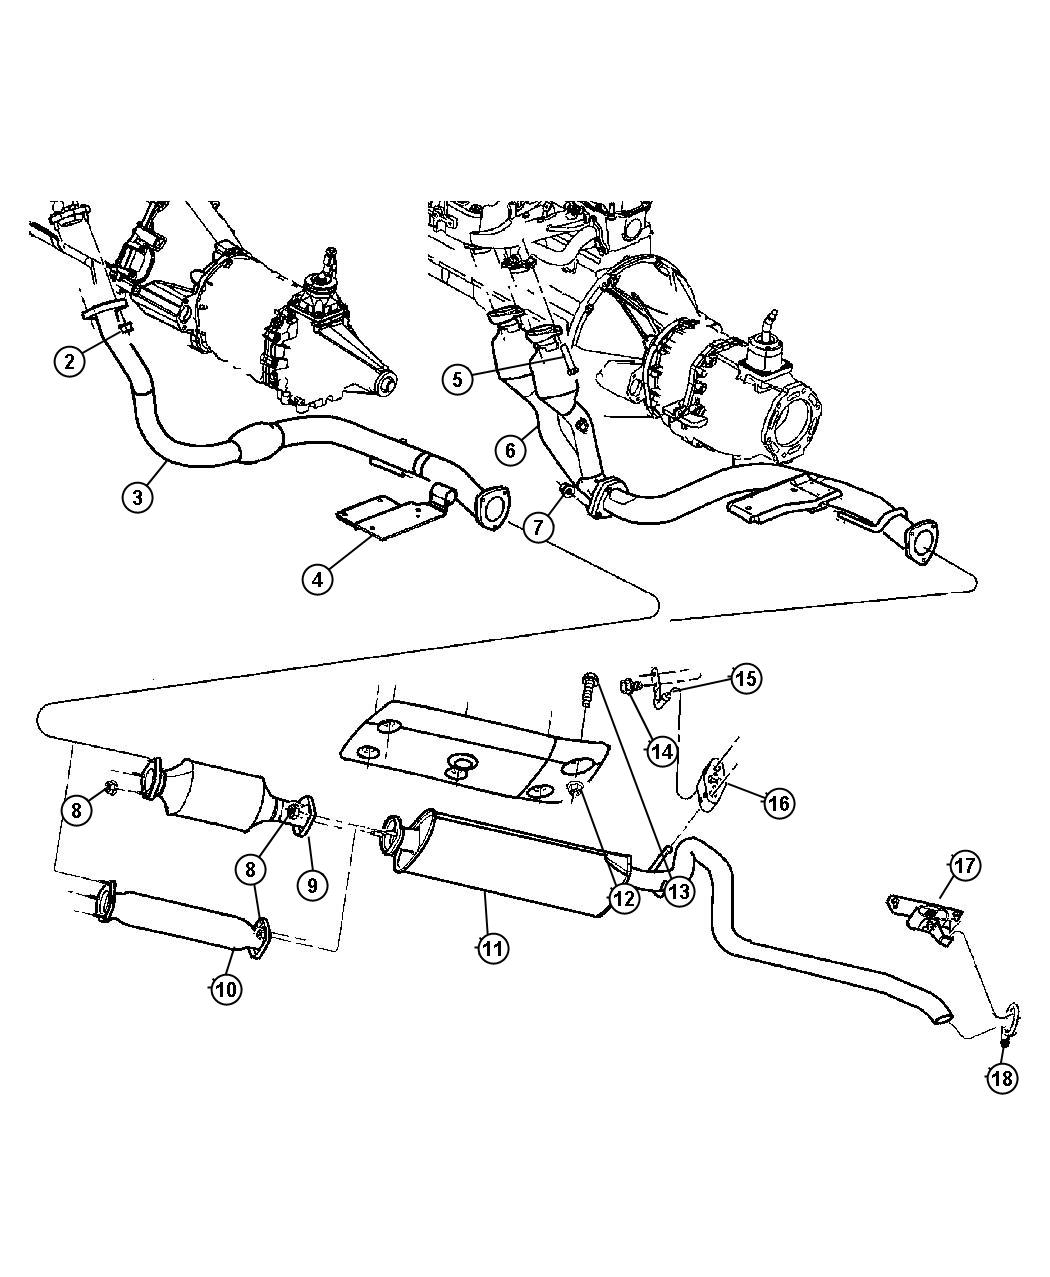 Diagram  1997 Jeep Wrangler Exhaust System Diagram Full Version Hd Quality System Diagram